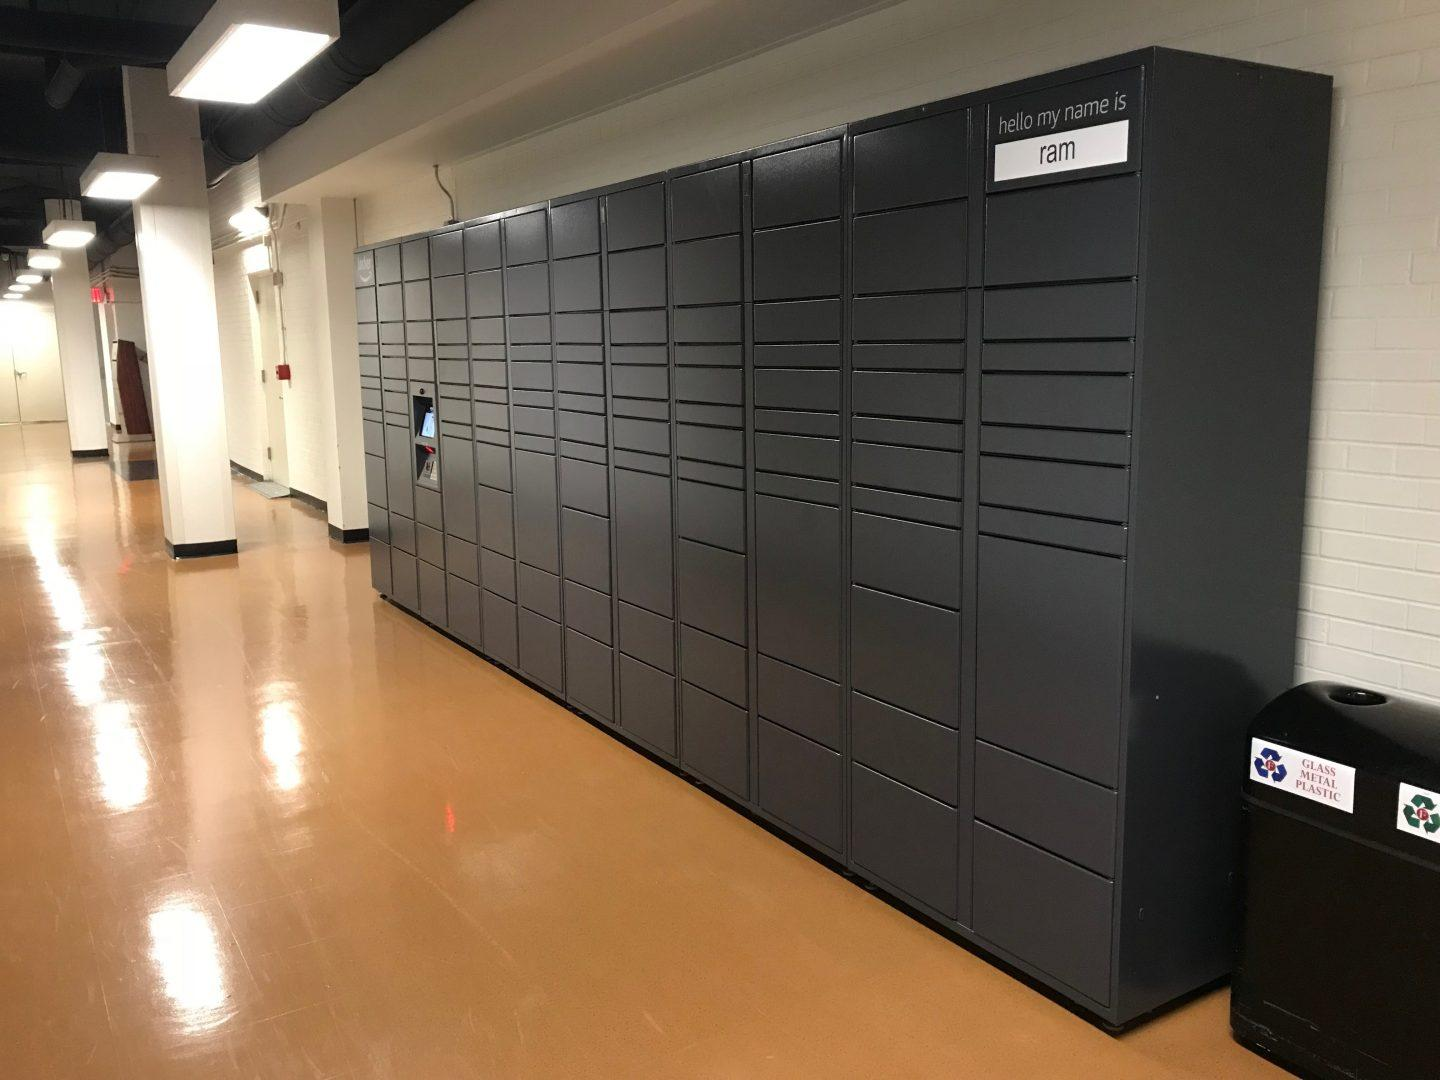 New Amazon lockers make picking up packages much easier. (LEO BERNABEI/THE OBSERVER)